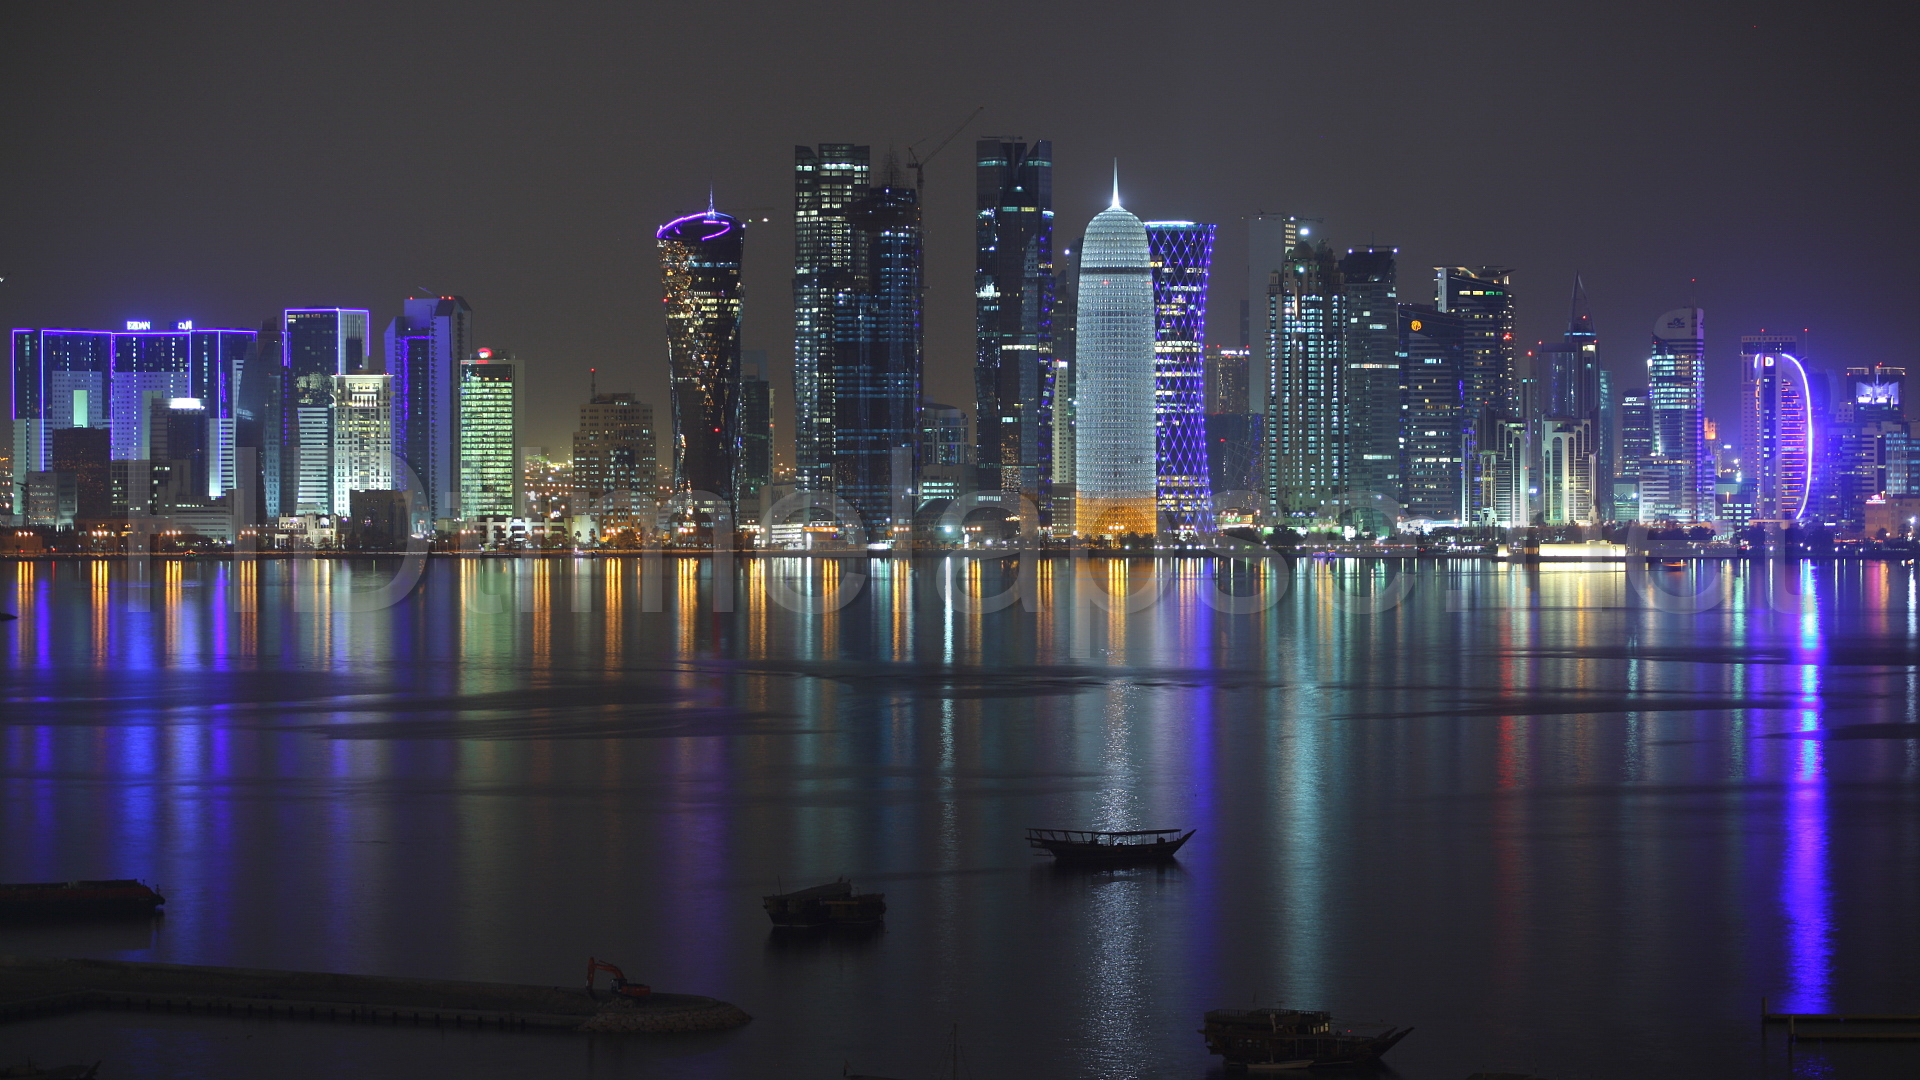 HQ Definition Creative Qatar Pictures, 1920x1080 px, Shanta Fenstermaker